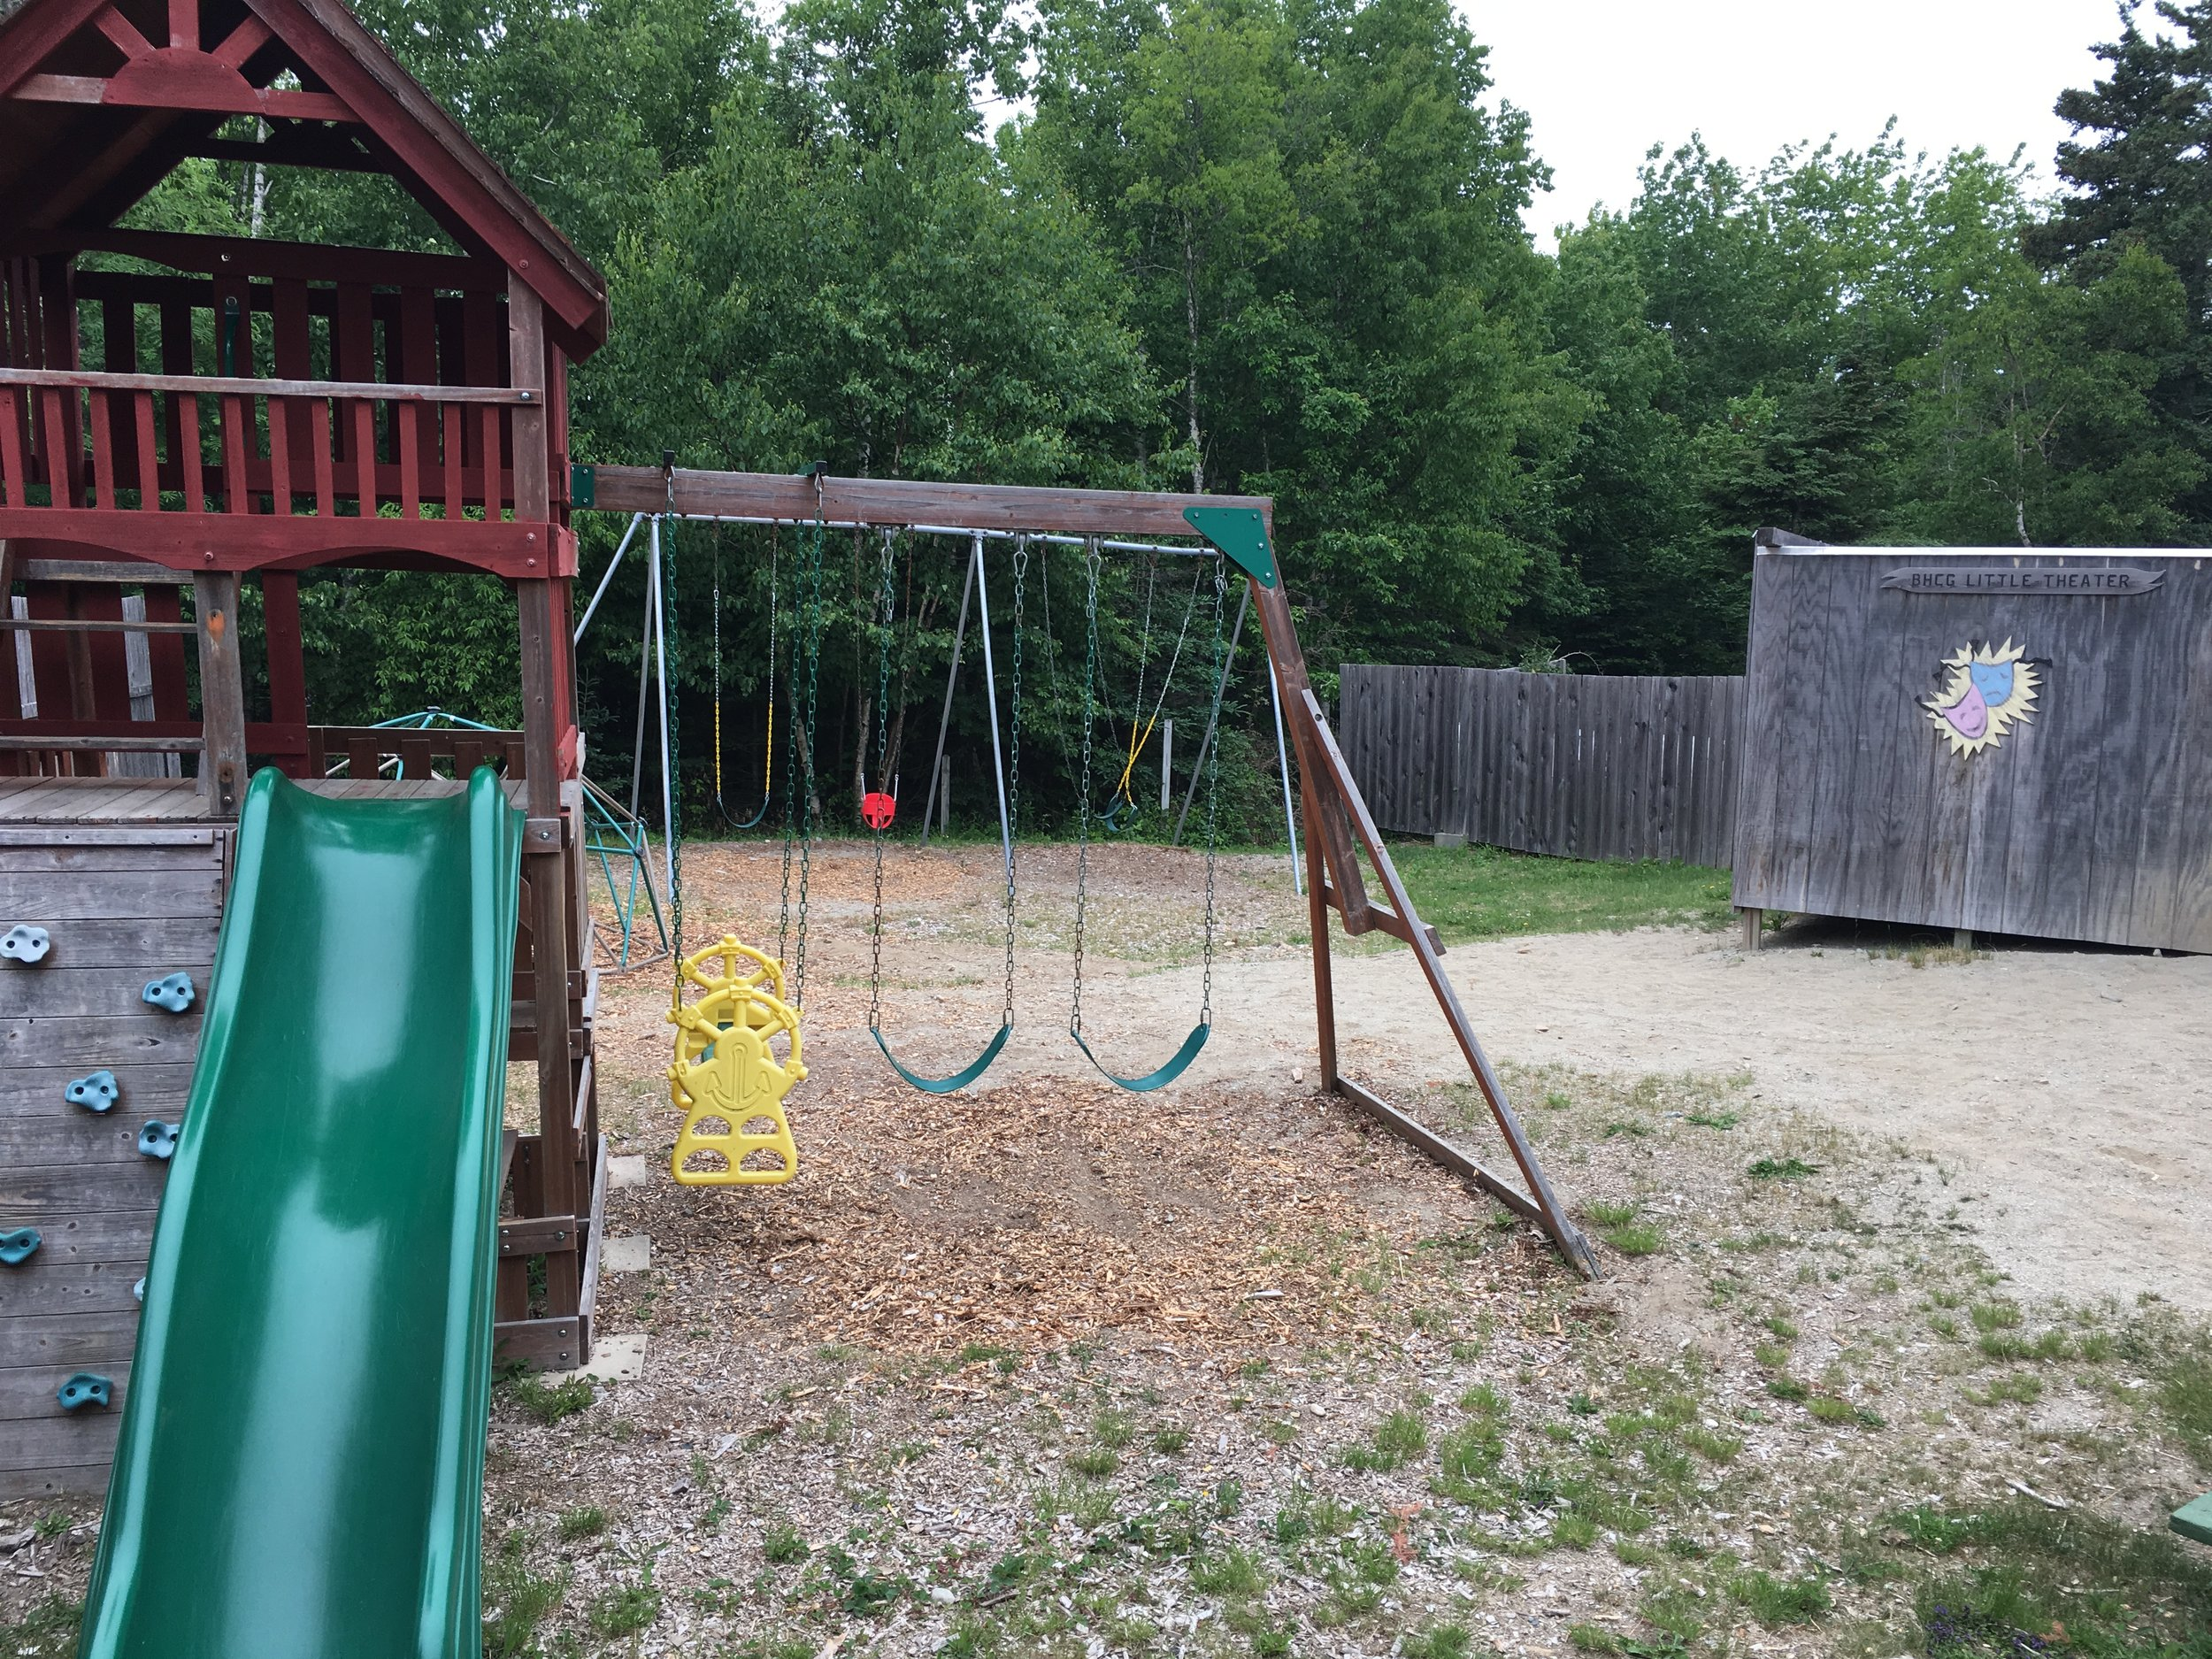 Playground - Our playground includes swings & a mini stage (super cool!)